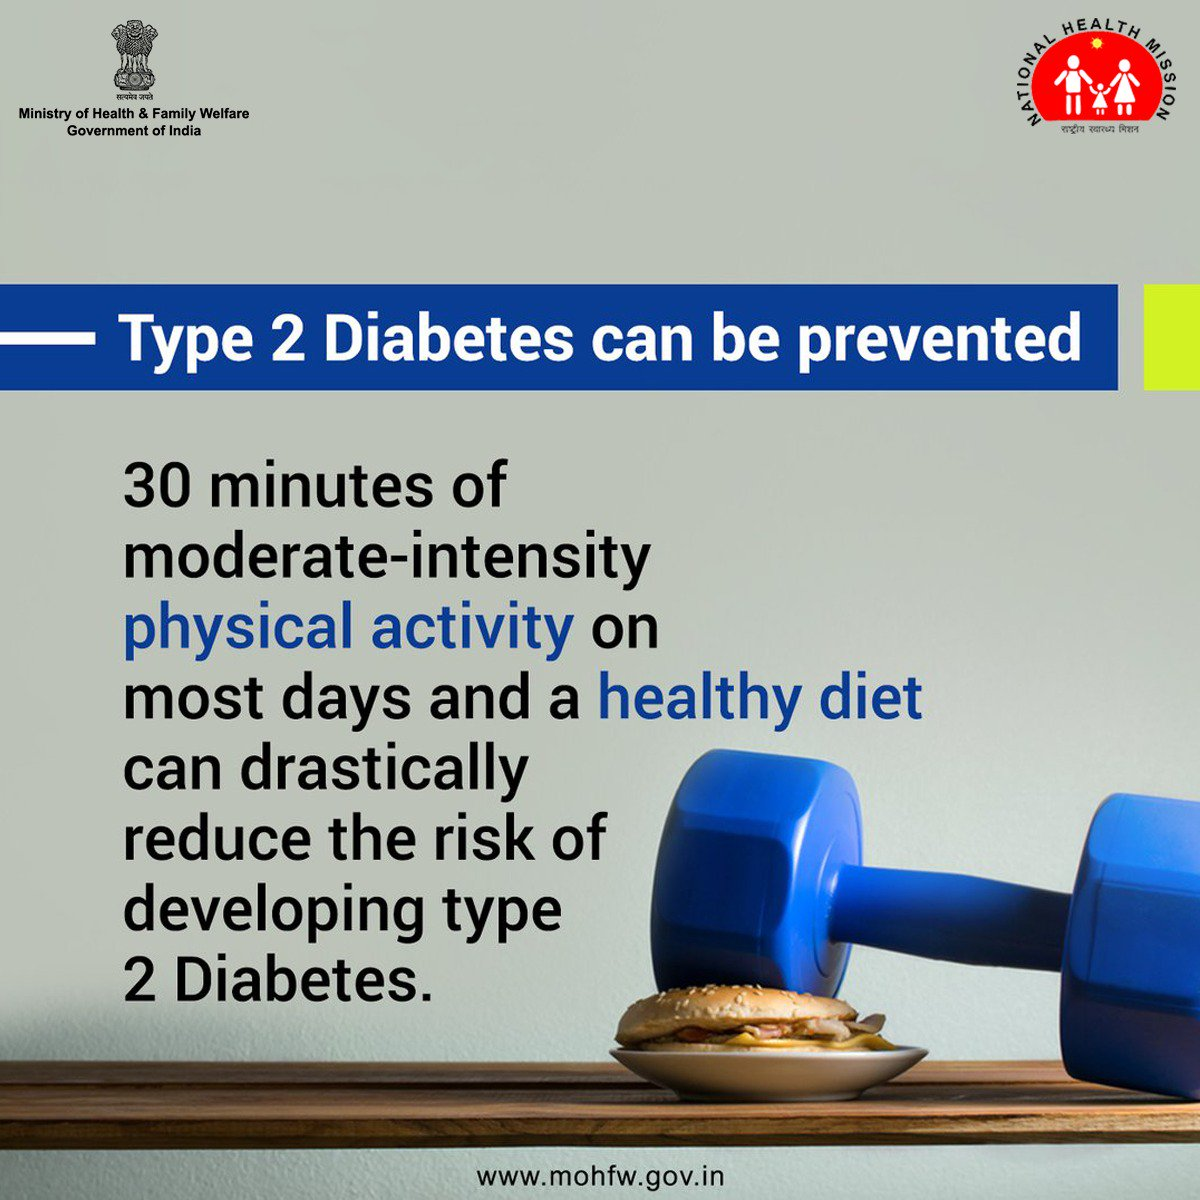 test Twitter Media - With type 2 #Diabetes, the body either doesn't produce enough #insulin, or it resists insulin. You can prevent it by self-care. https://t.co/78L7M1cq0y  #BeatNCDs #SwasthaBharat https://t.co/wCwfT8SbjR